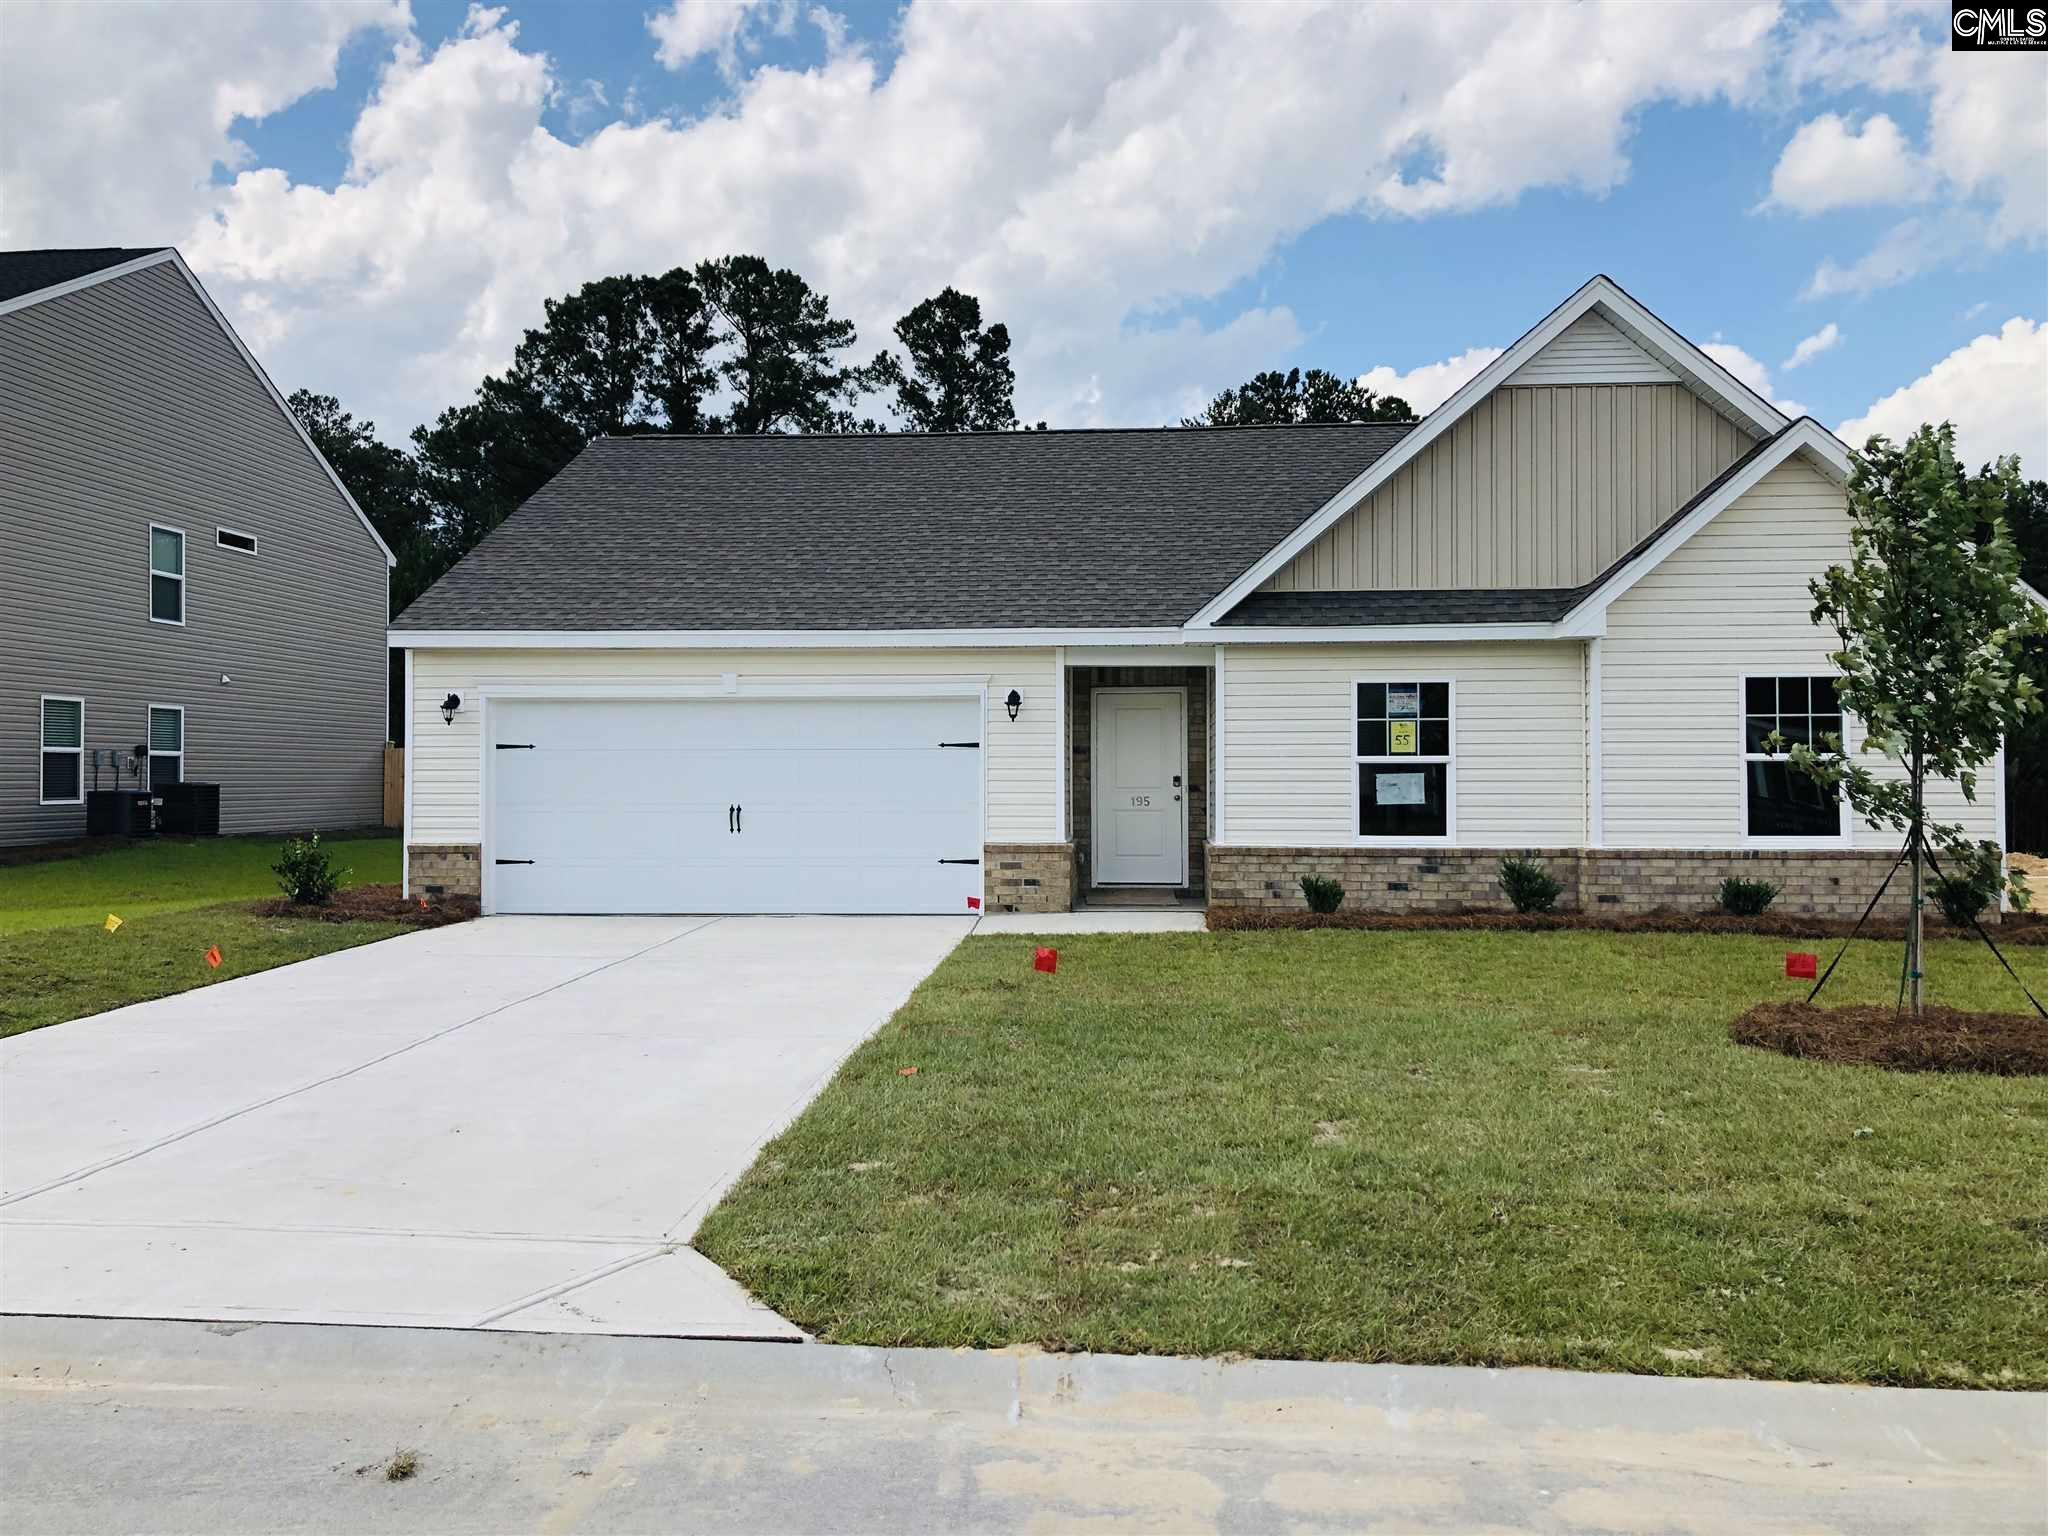 195 Turnfield West Columbia, SC 29170